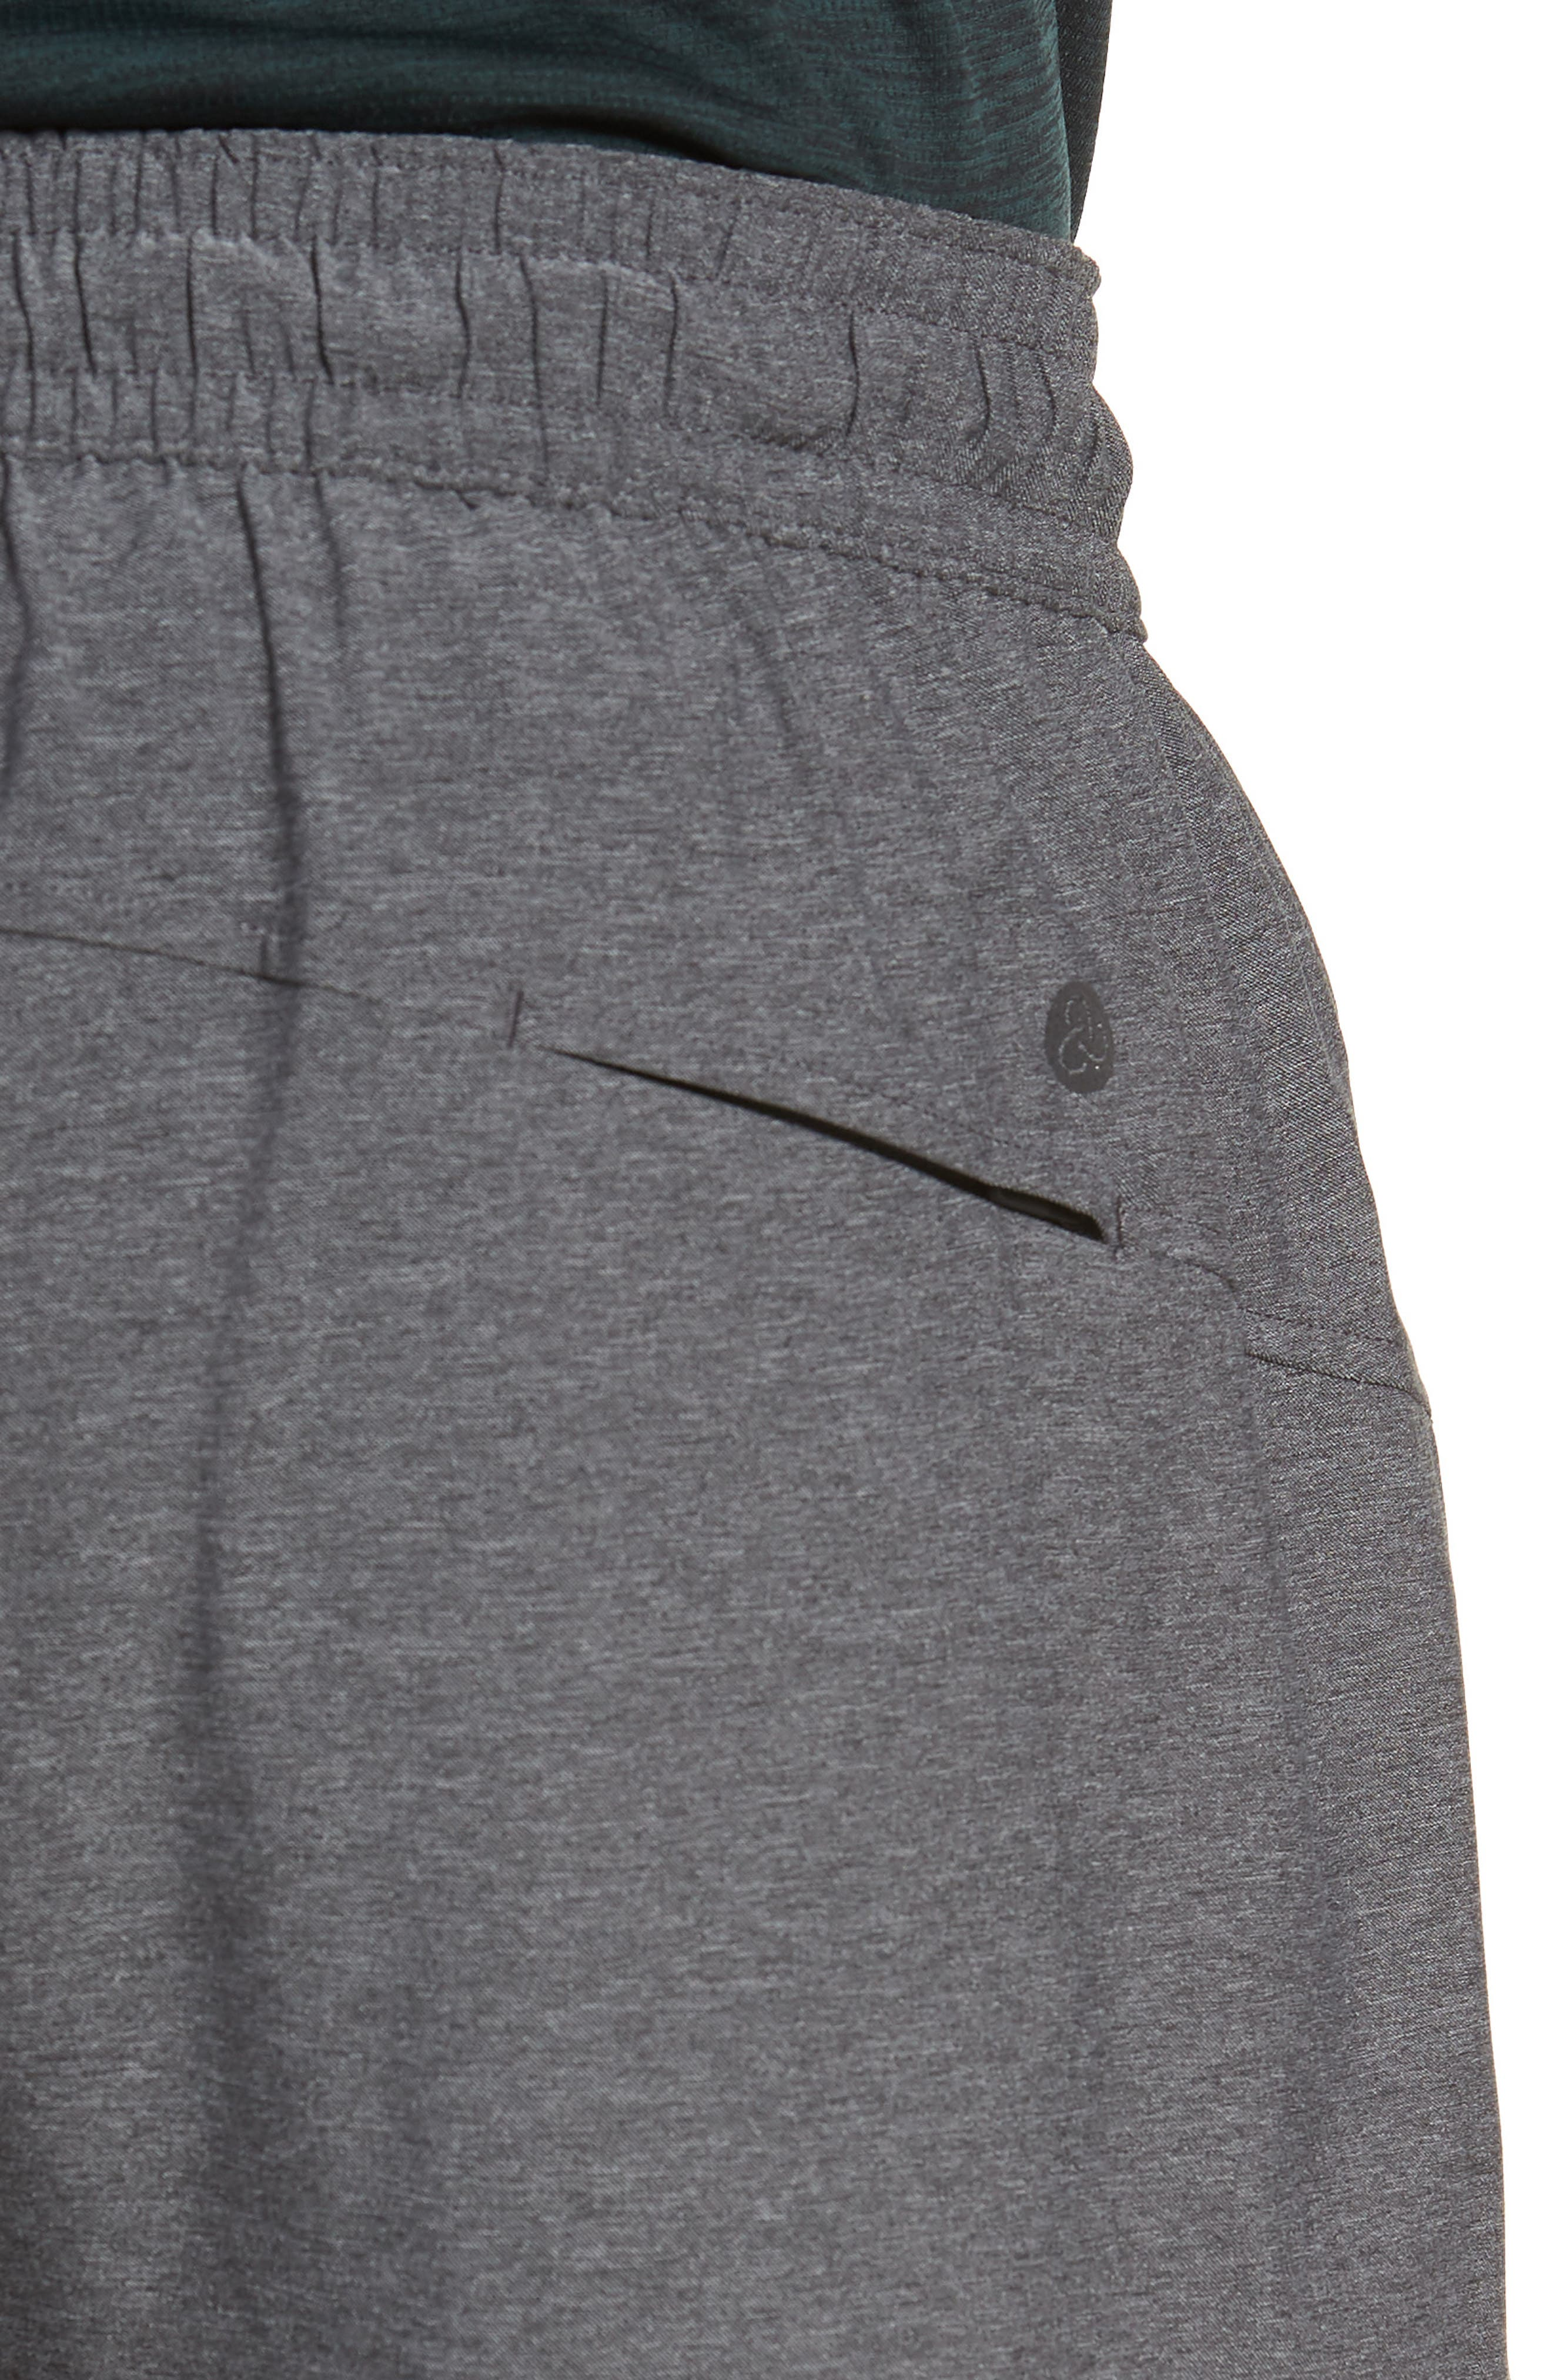 ZELLA, Tapered Stretch Track Pants, Alternate thumbnail 5, color, GREY OBSIDIAN MELANGE